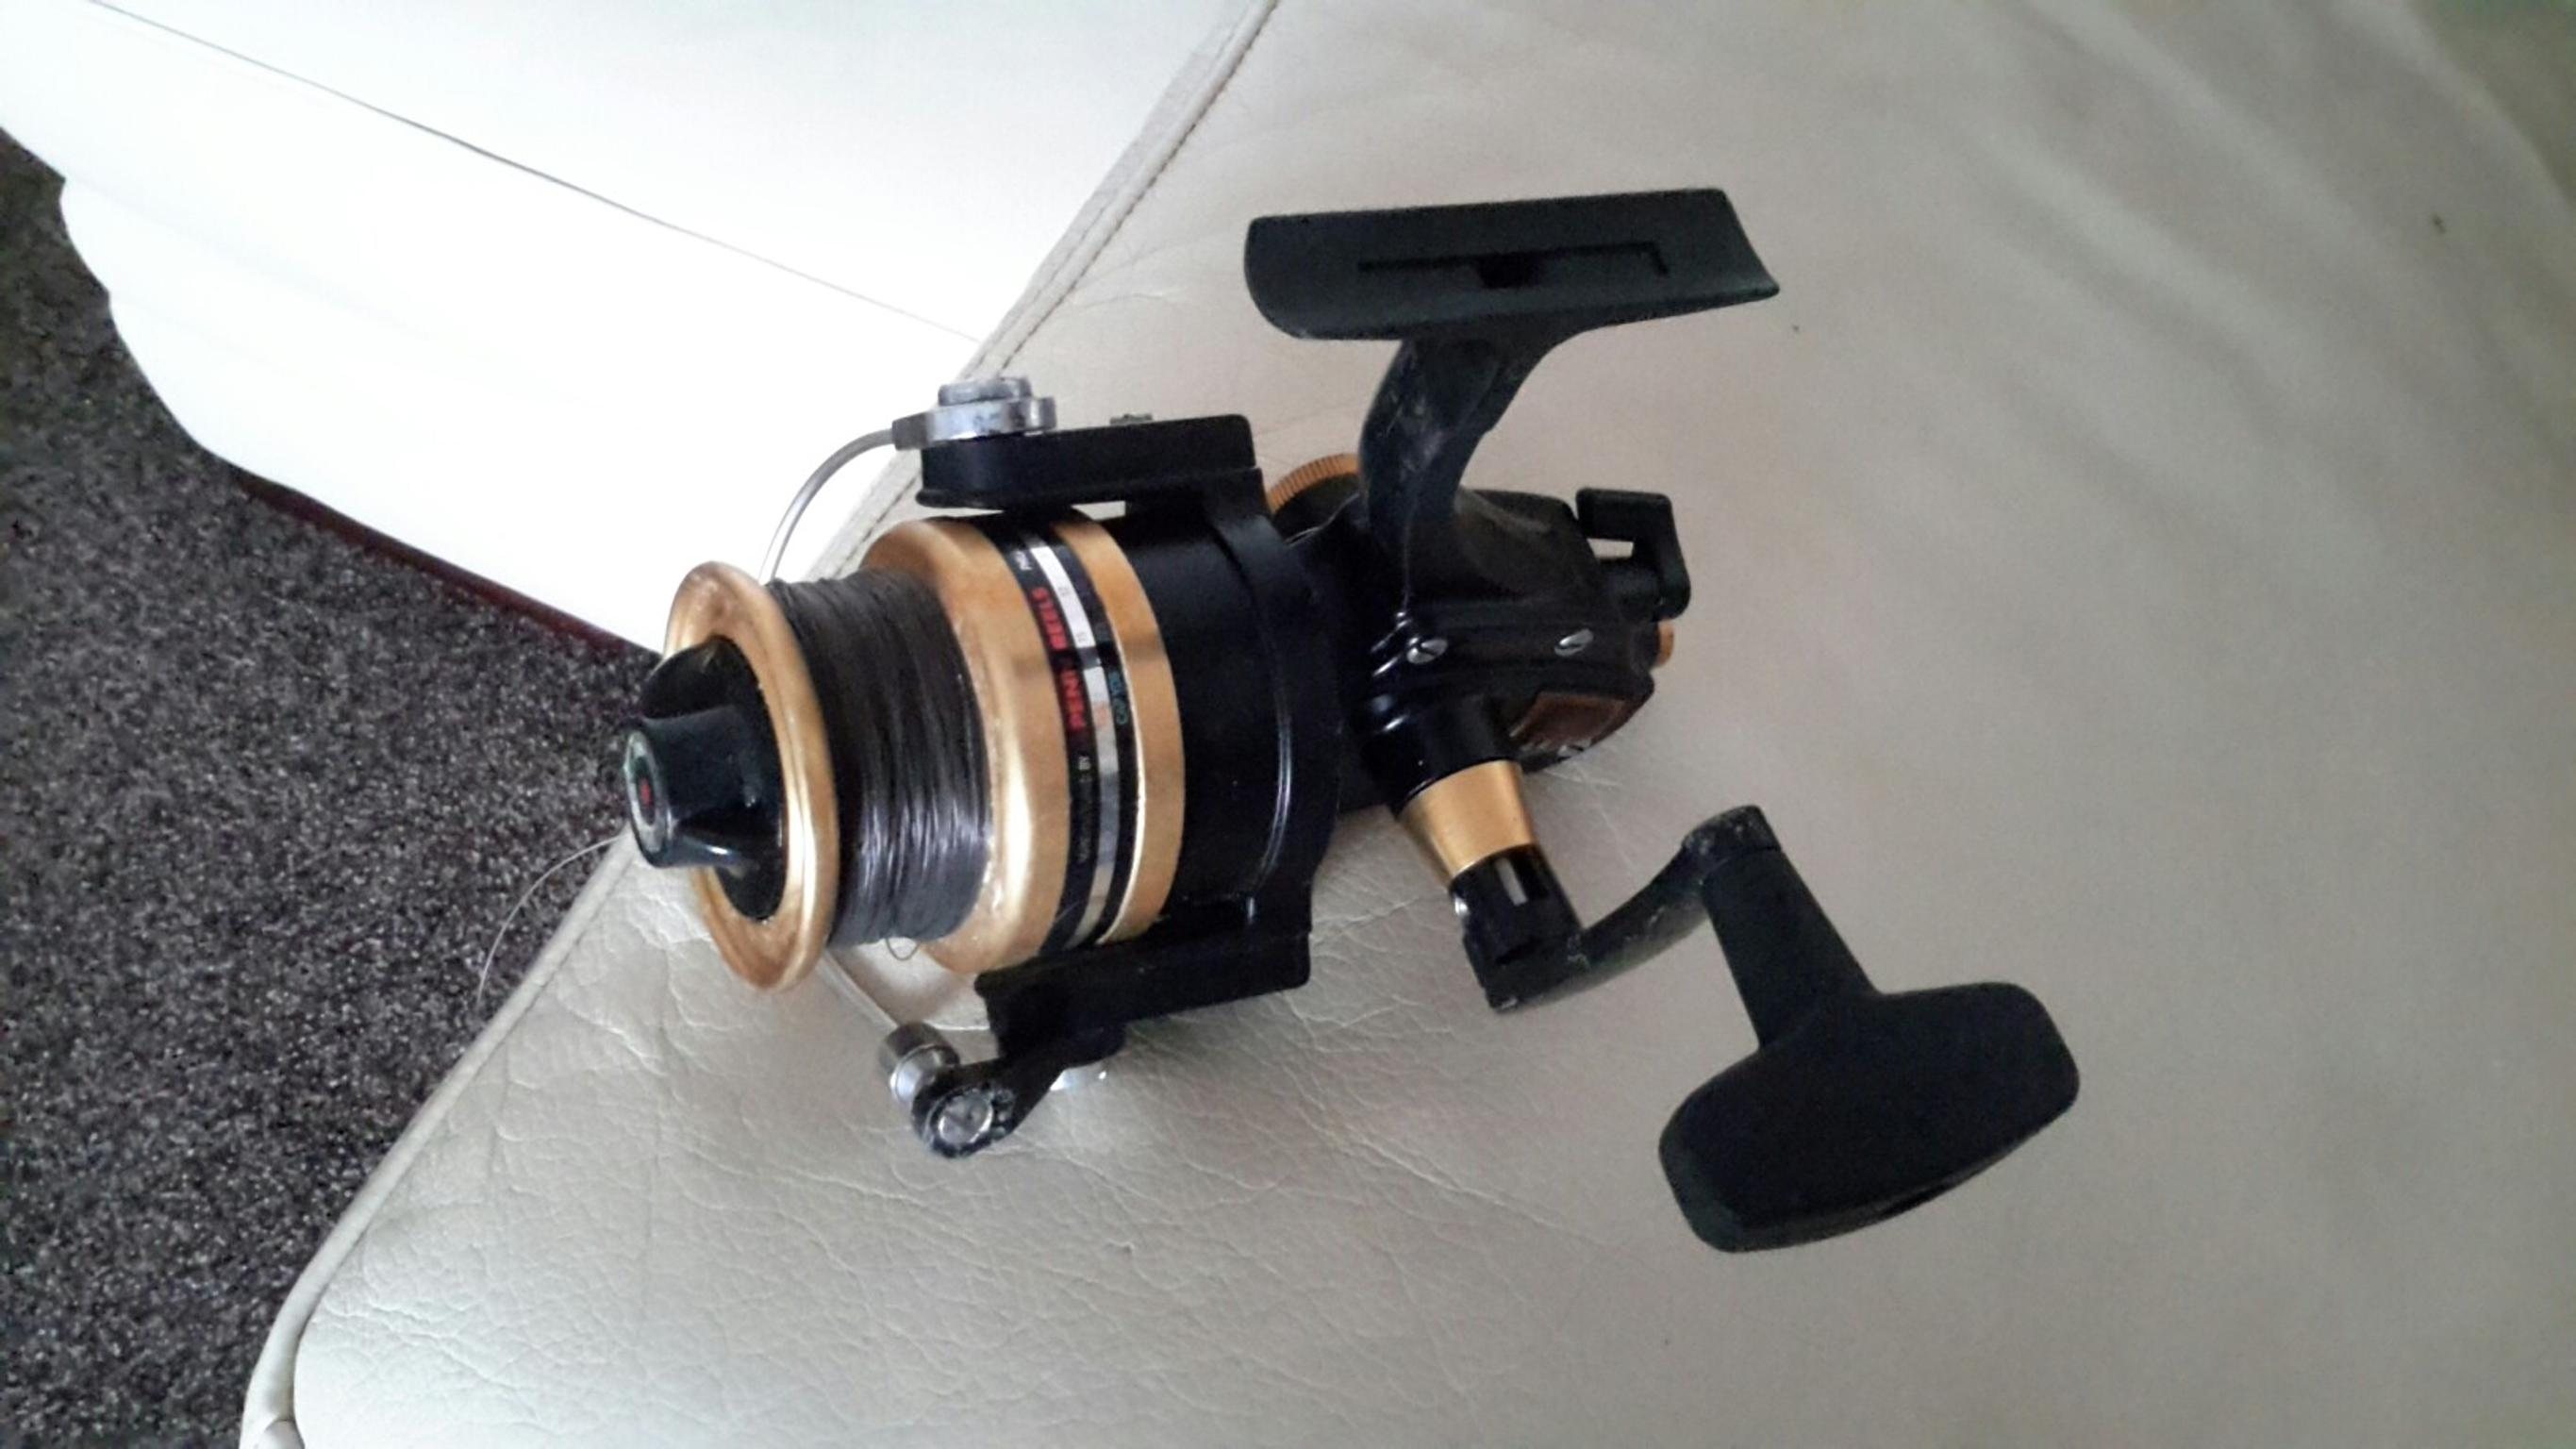 Sea fishing rod (beachcasting) and reel.